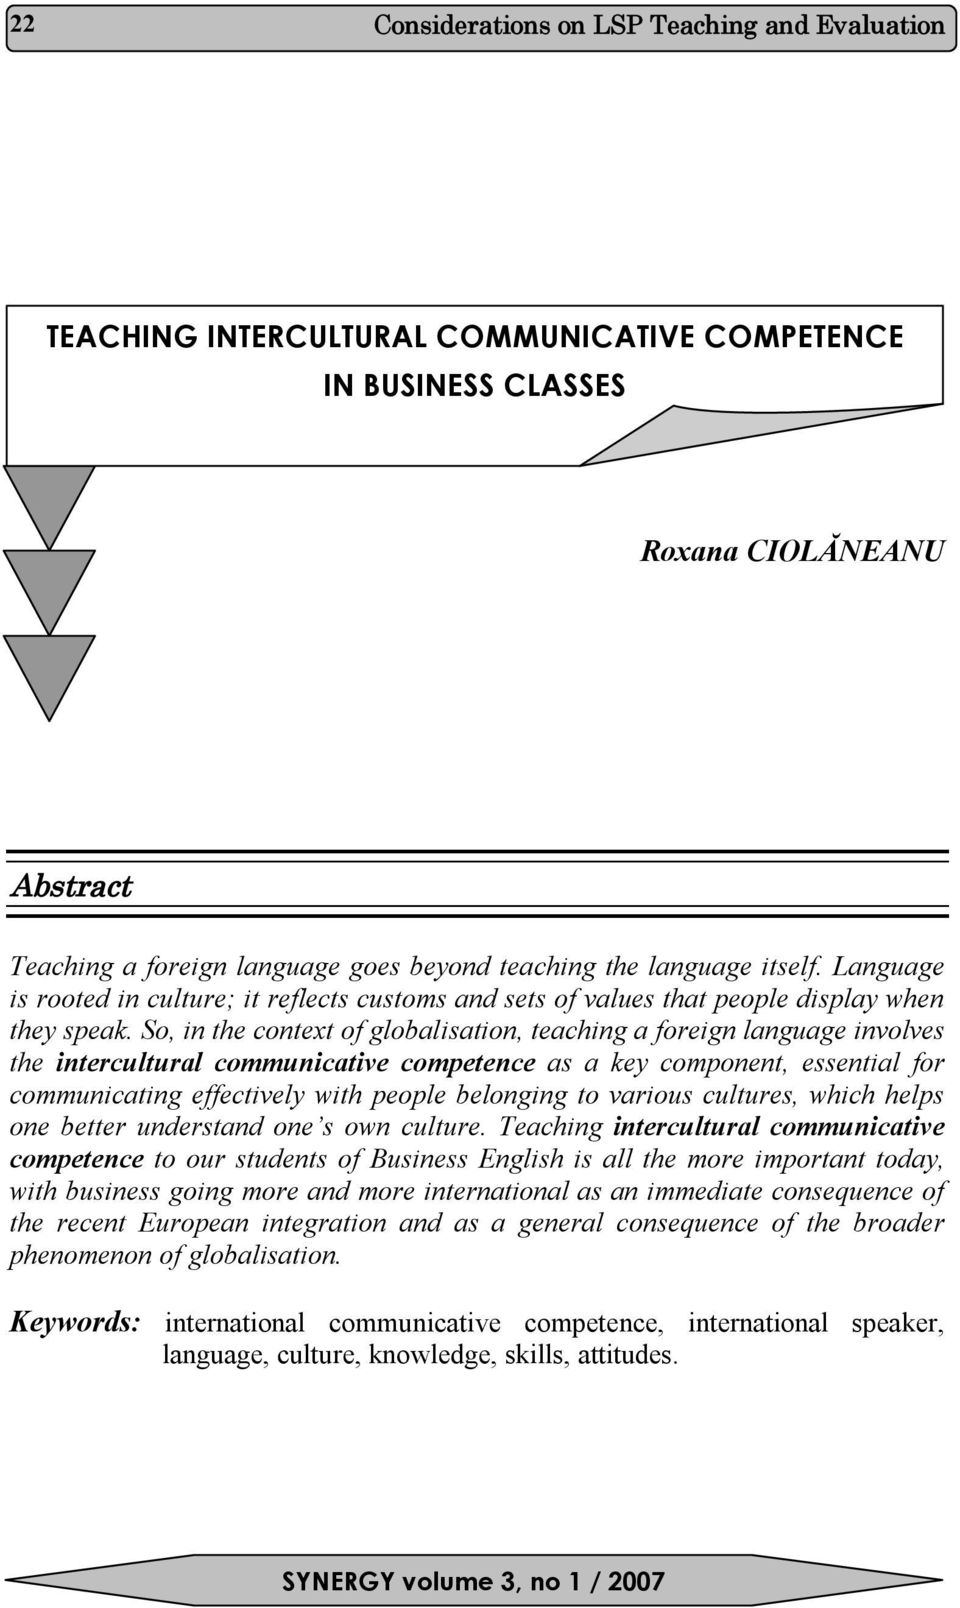 So, in the context of globalisation, teaching a foreign language involves the intercultural communicative competence as a key component, essential for communicating effectively with people belonging